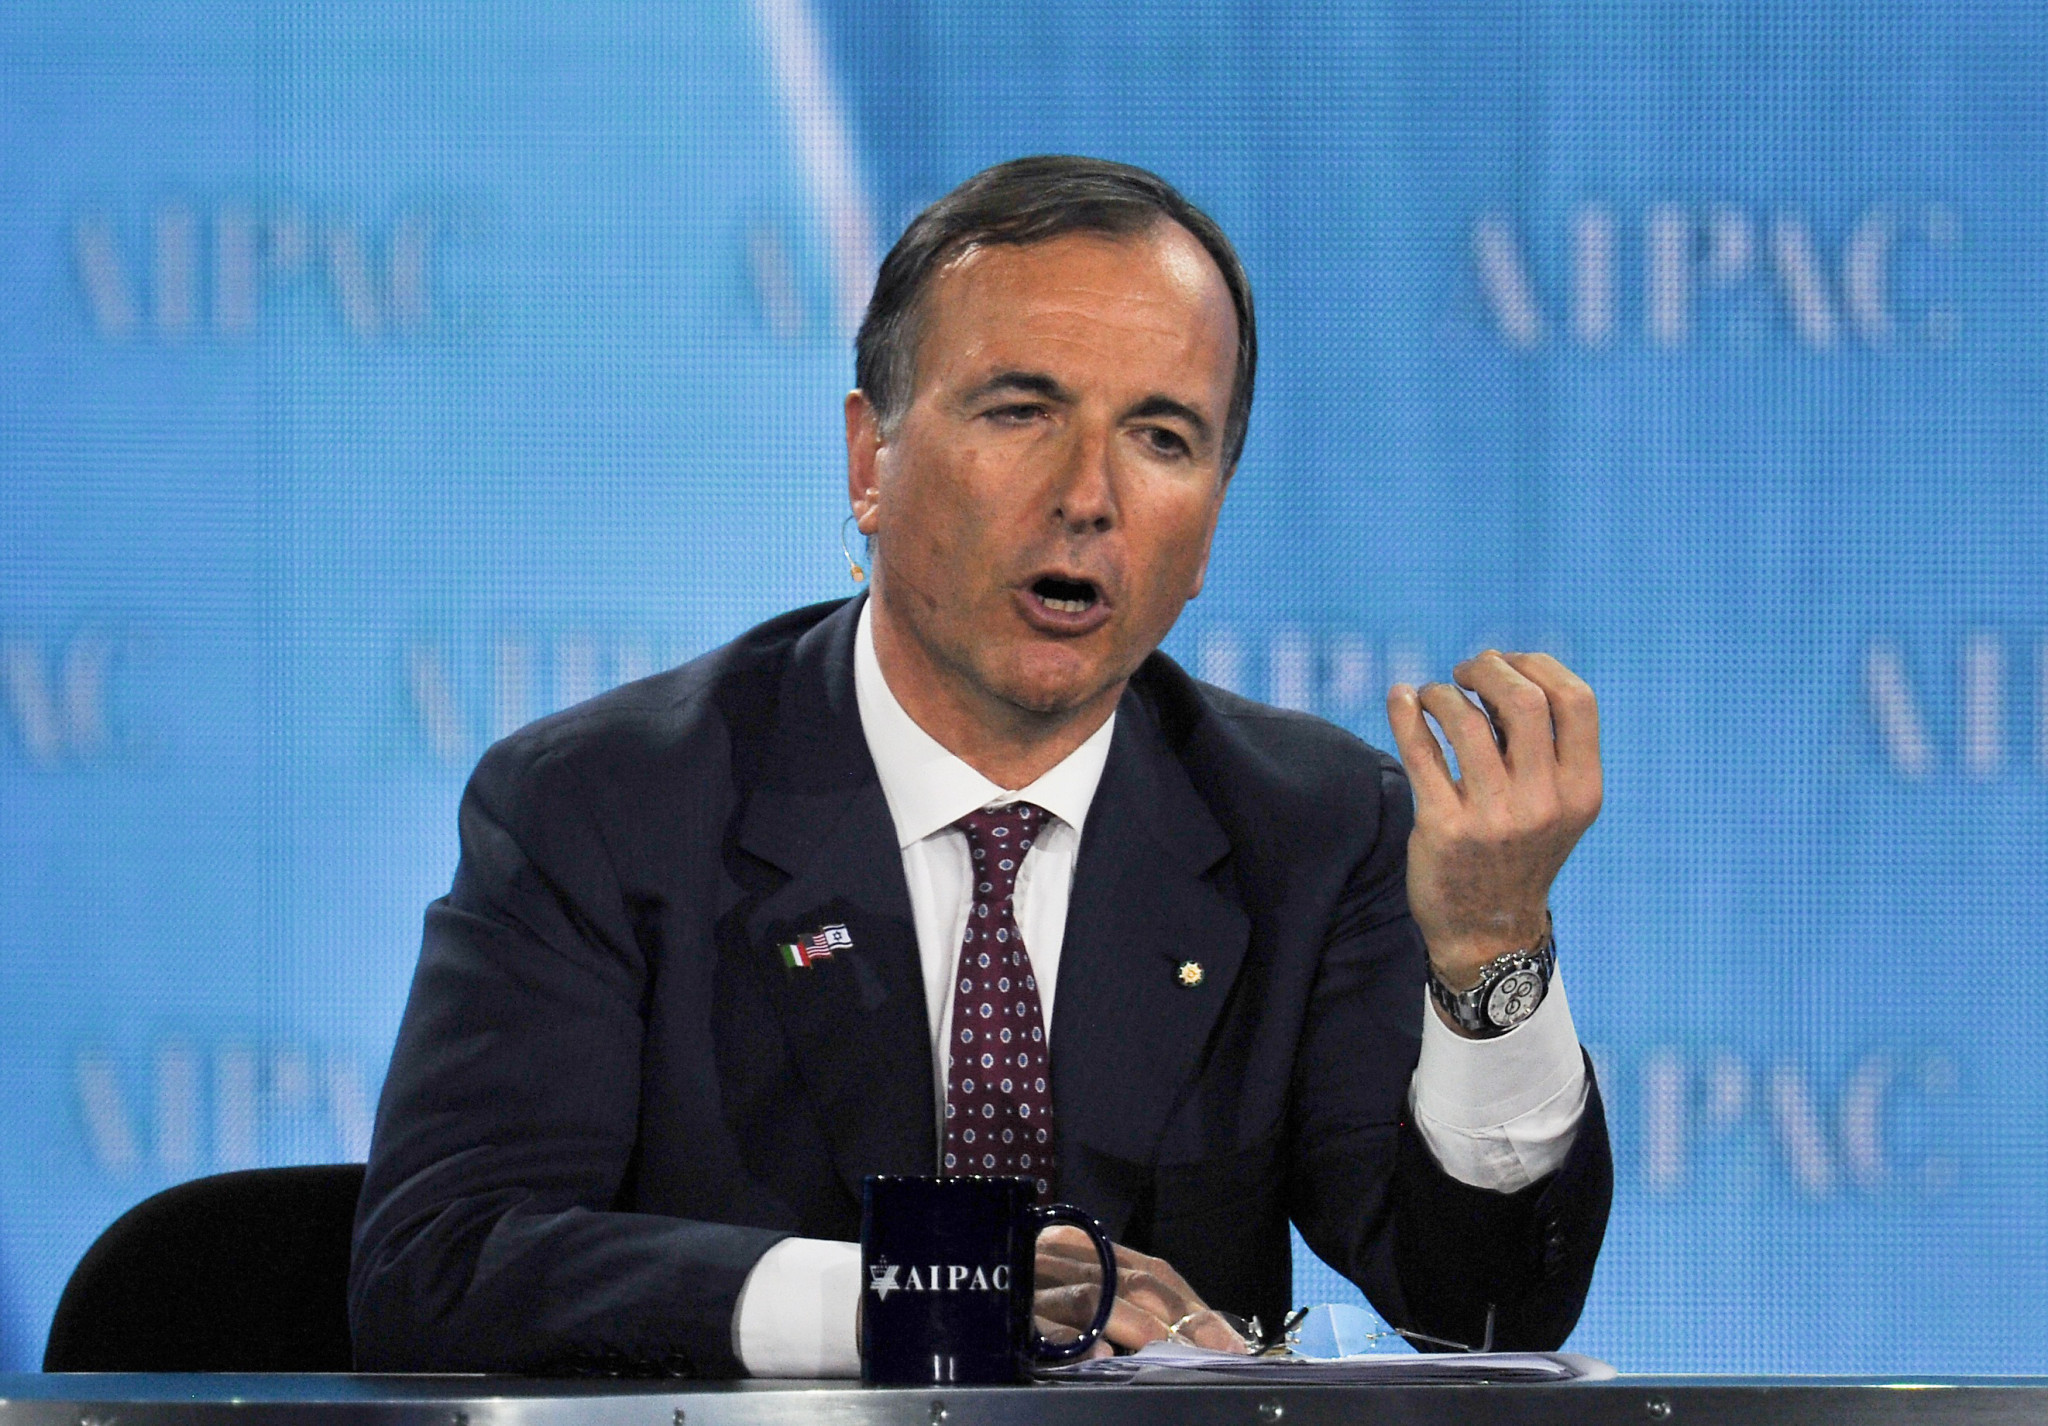 Frattini re-elected Sport Integrity Global Alliance chair